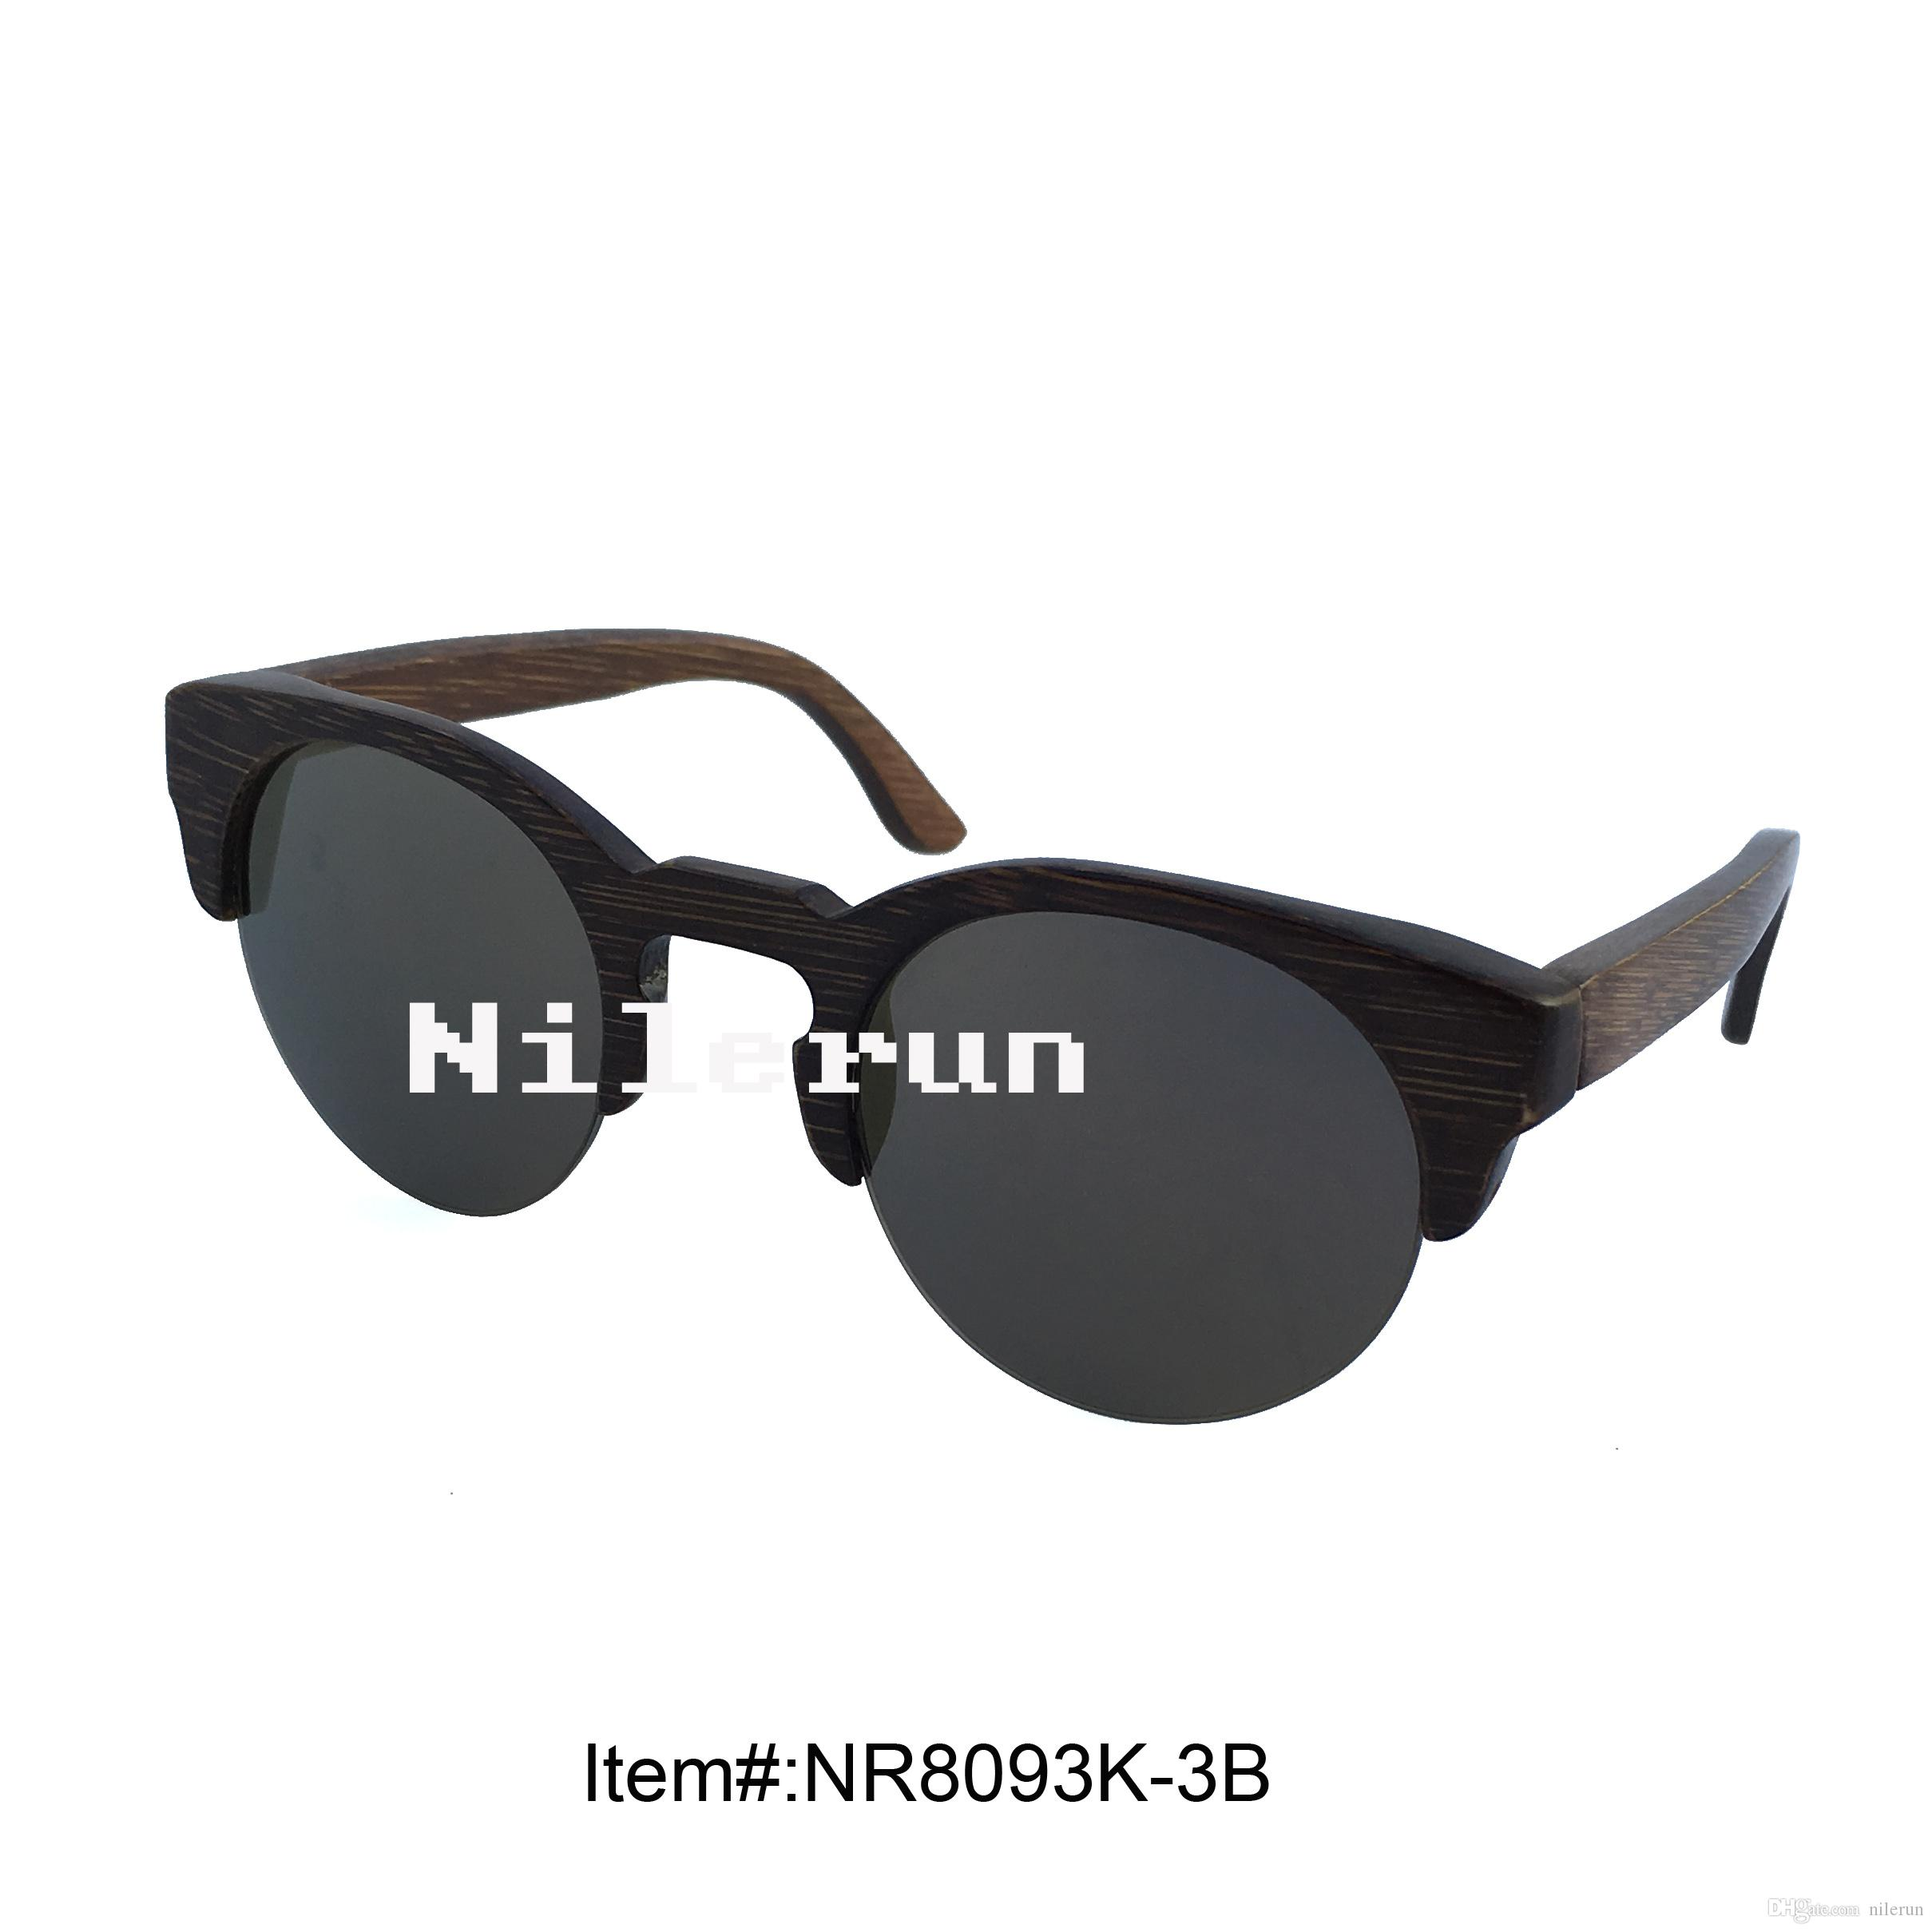 2de06fb37c Antique Round Brown Bamboo Half Frame Brown Polarized Lens Sunglasses Semi-rimless  Sunglasses Semi-rim Sunglasses Half Frame Sunglasses Online with ...